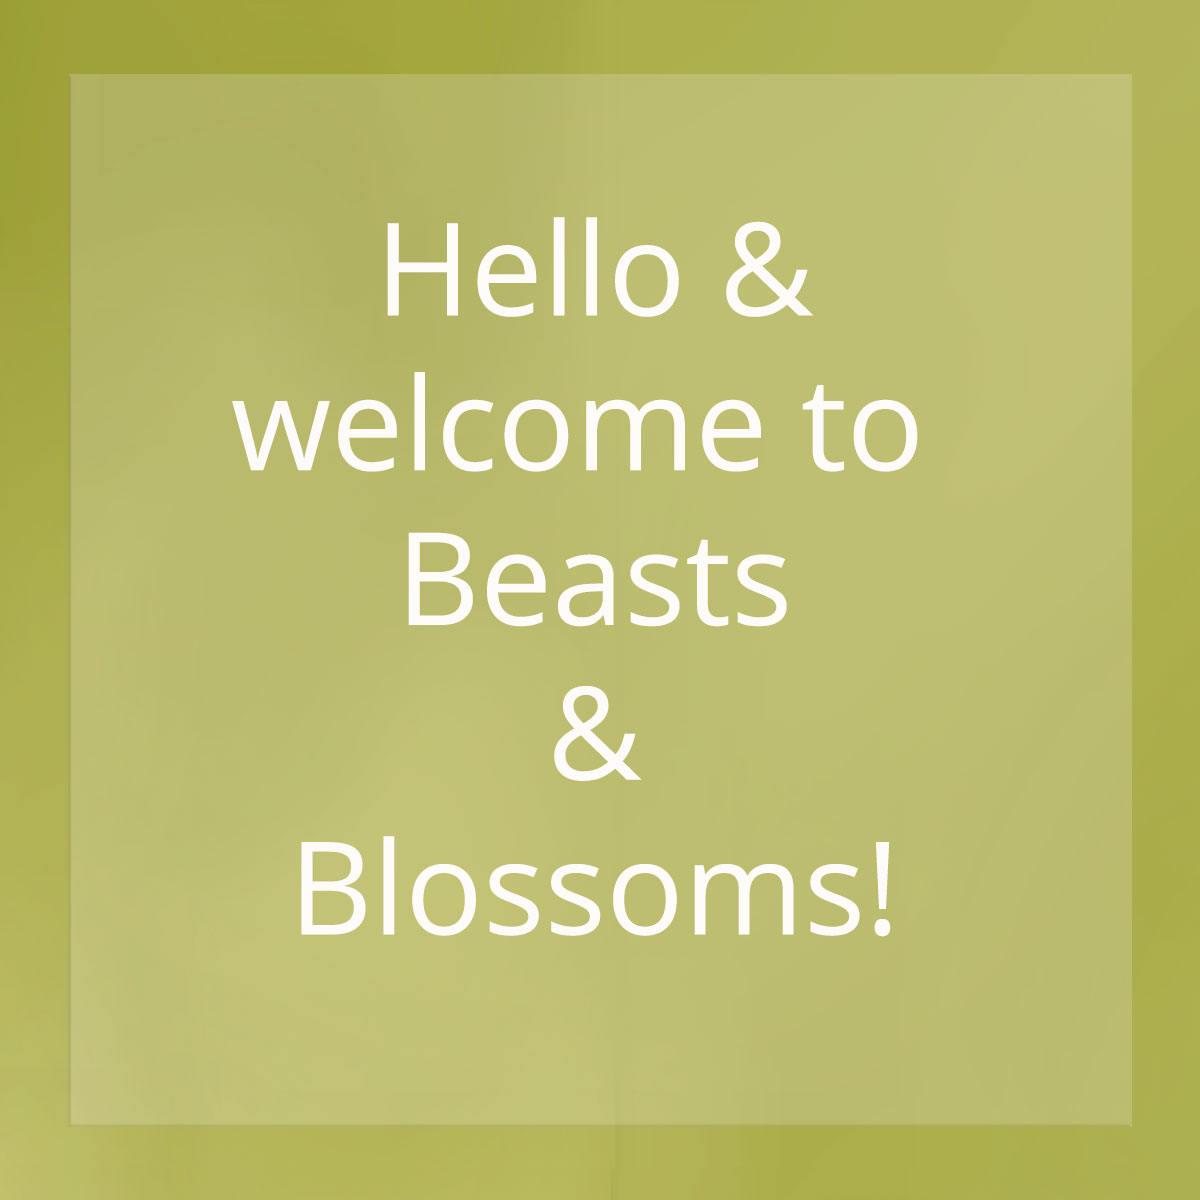 Beasts & Blossoms Nature Photography & Handmade Jewellery - every purchase supports wildlife conservation